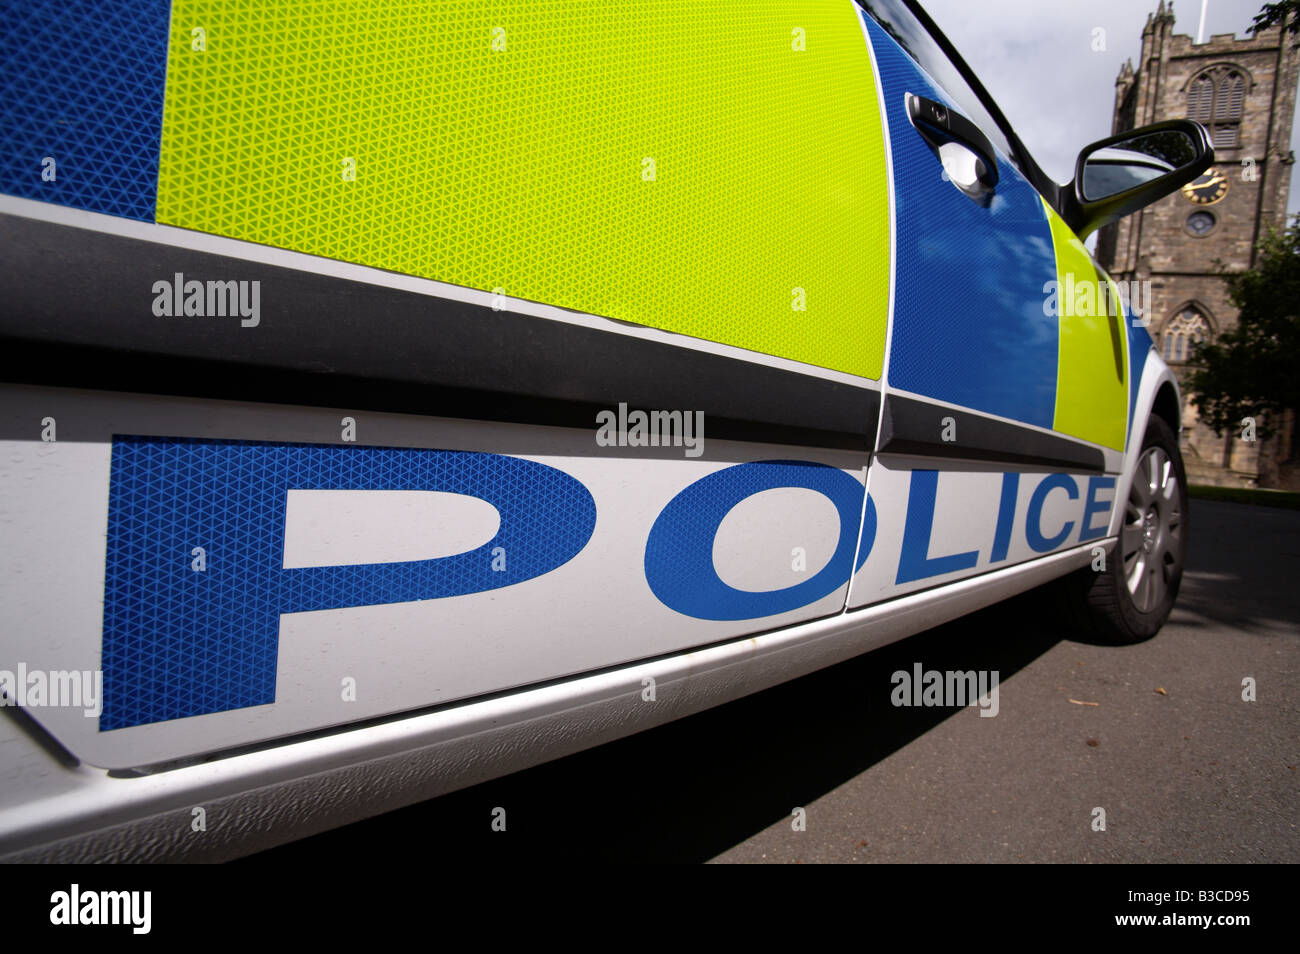 close up of the livery of a police car parked outside a church - Stock Image